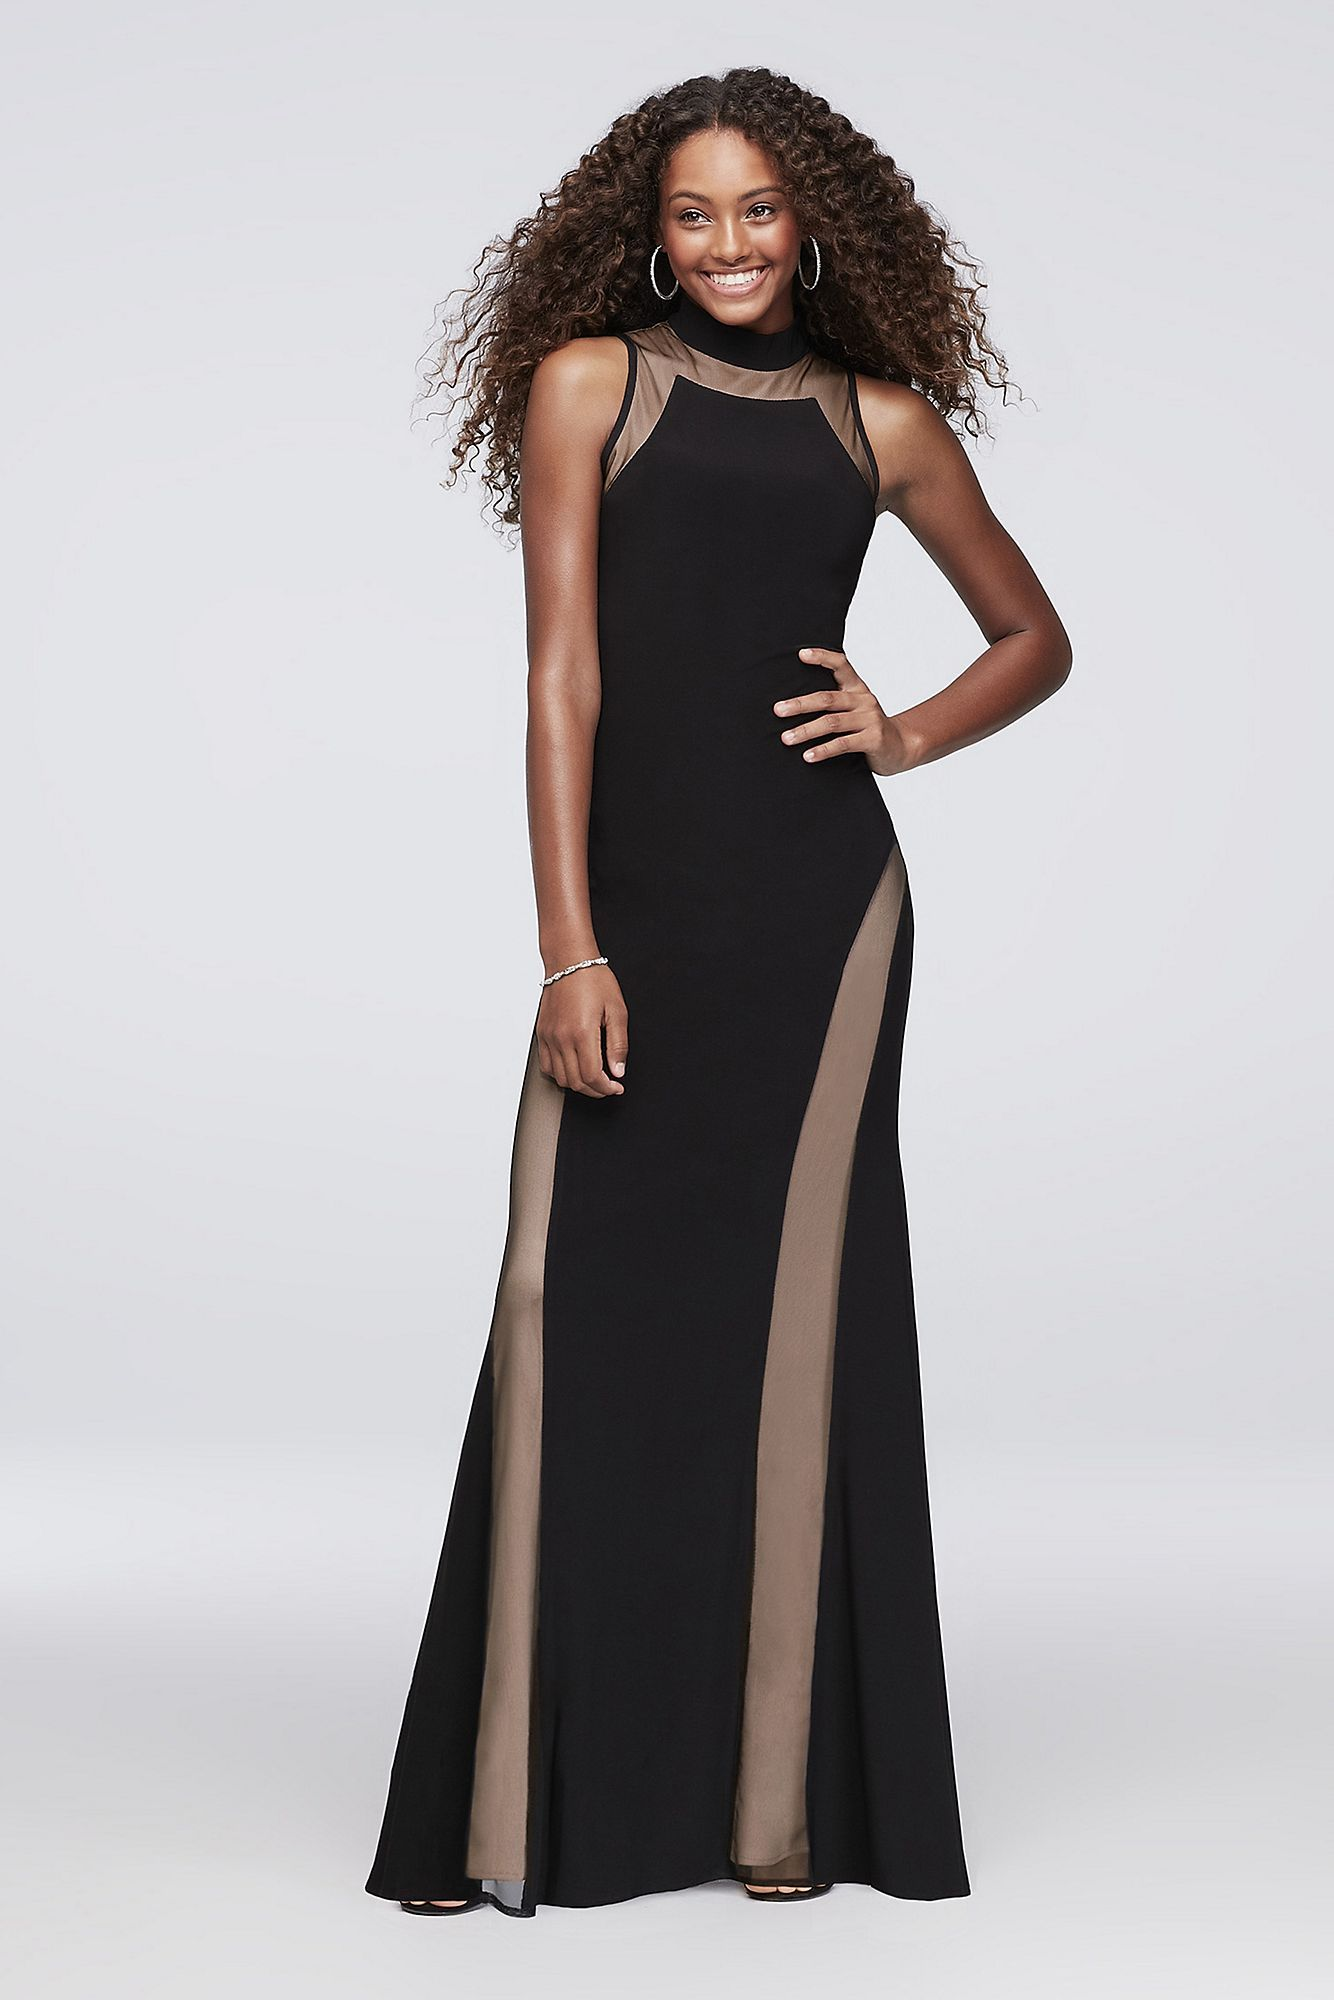 68c2bc5a1ae 2018 New Style Mock-Neck Jersey Gown with Illusion Insets Morgan and Co  21470